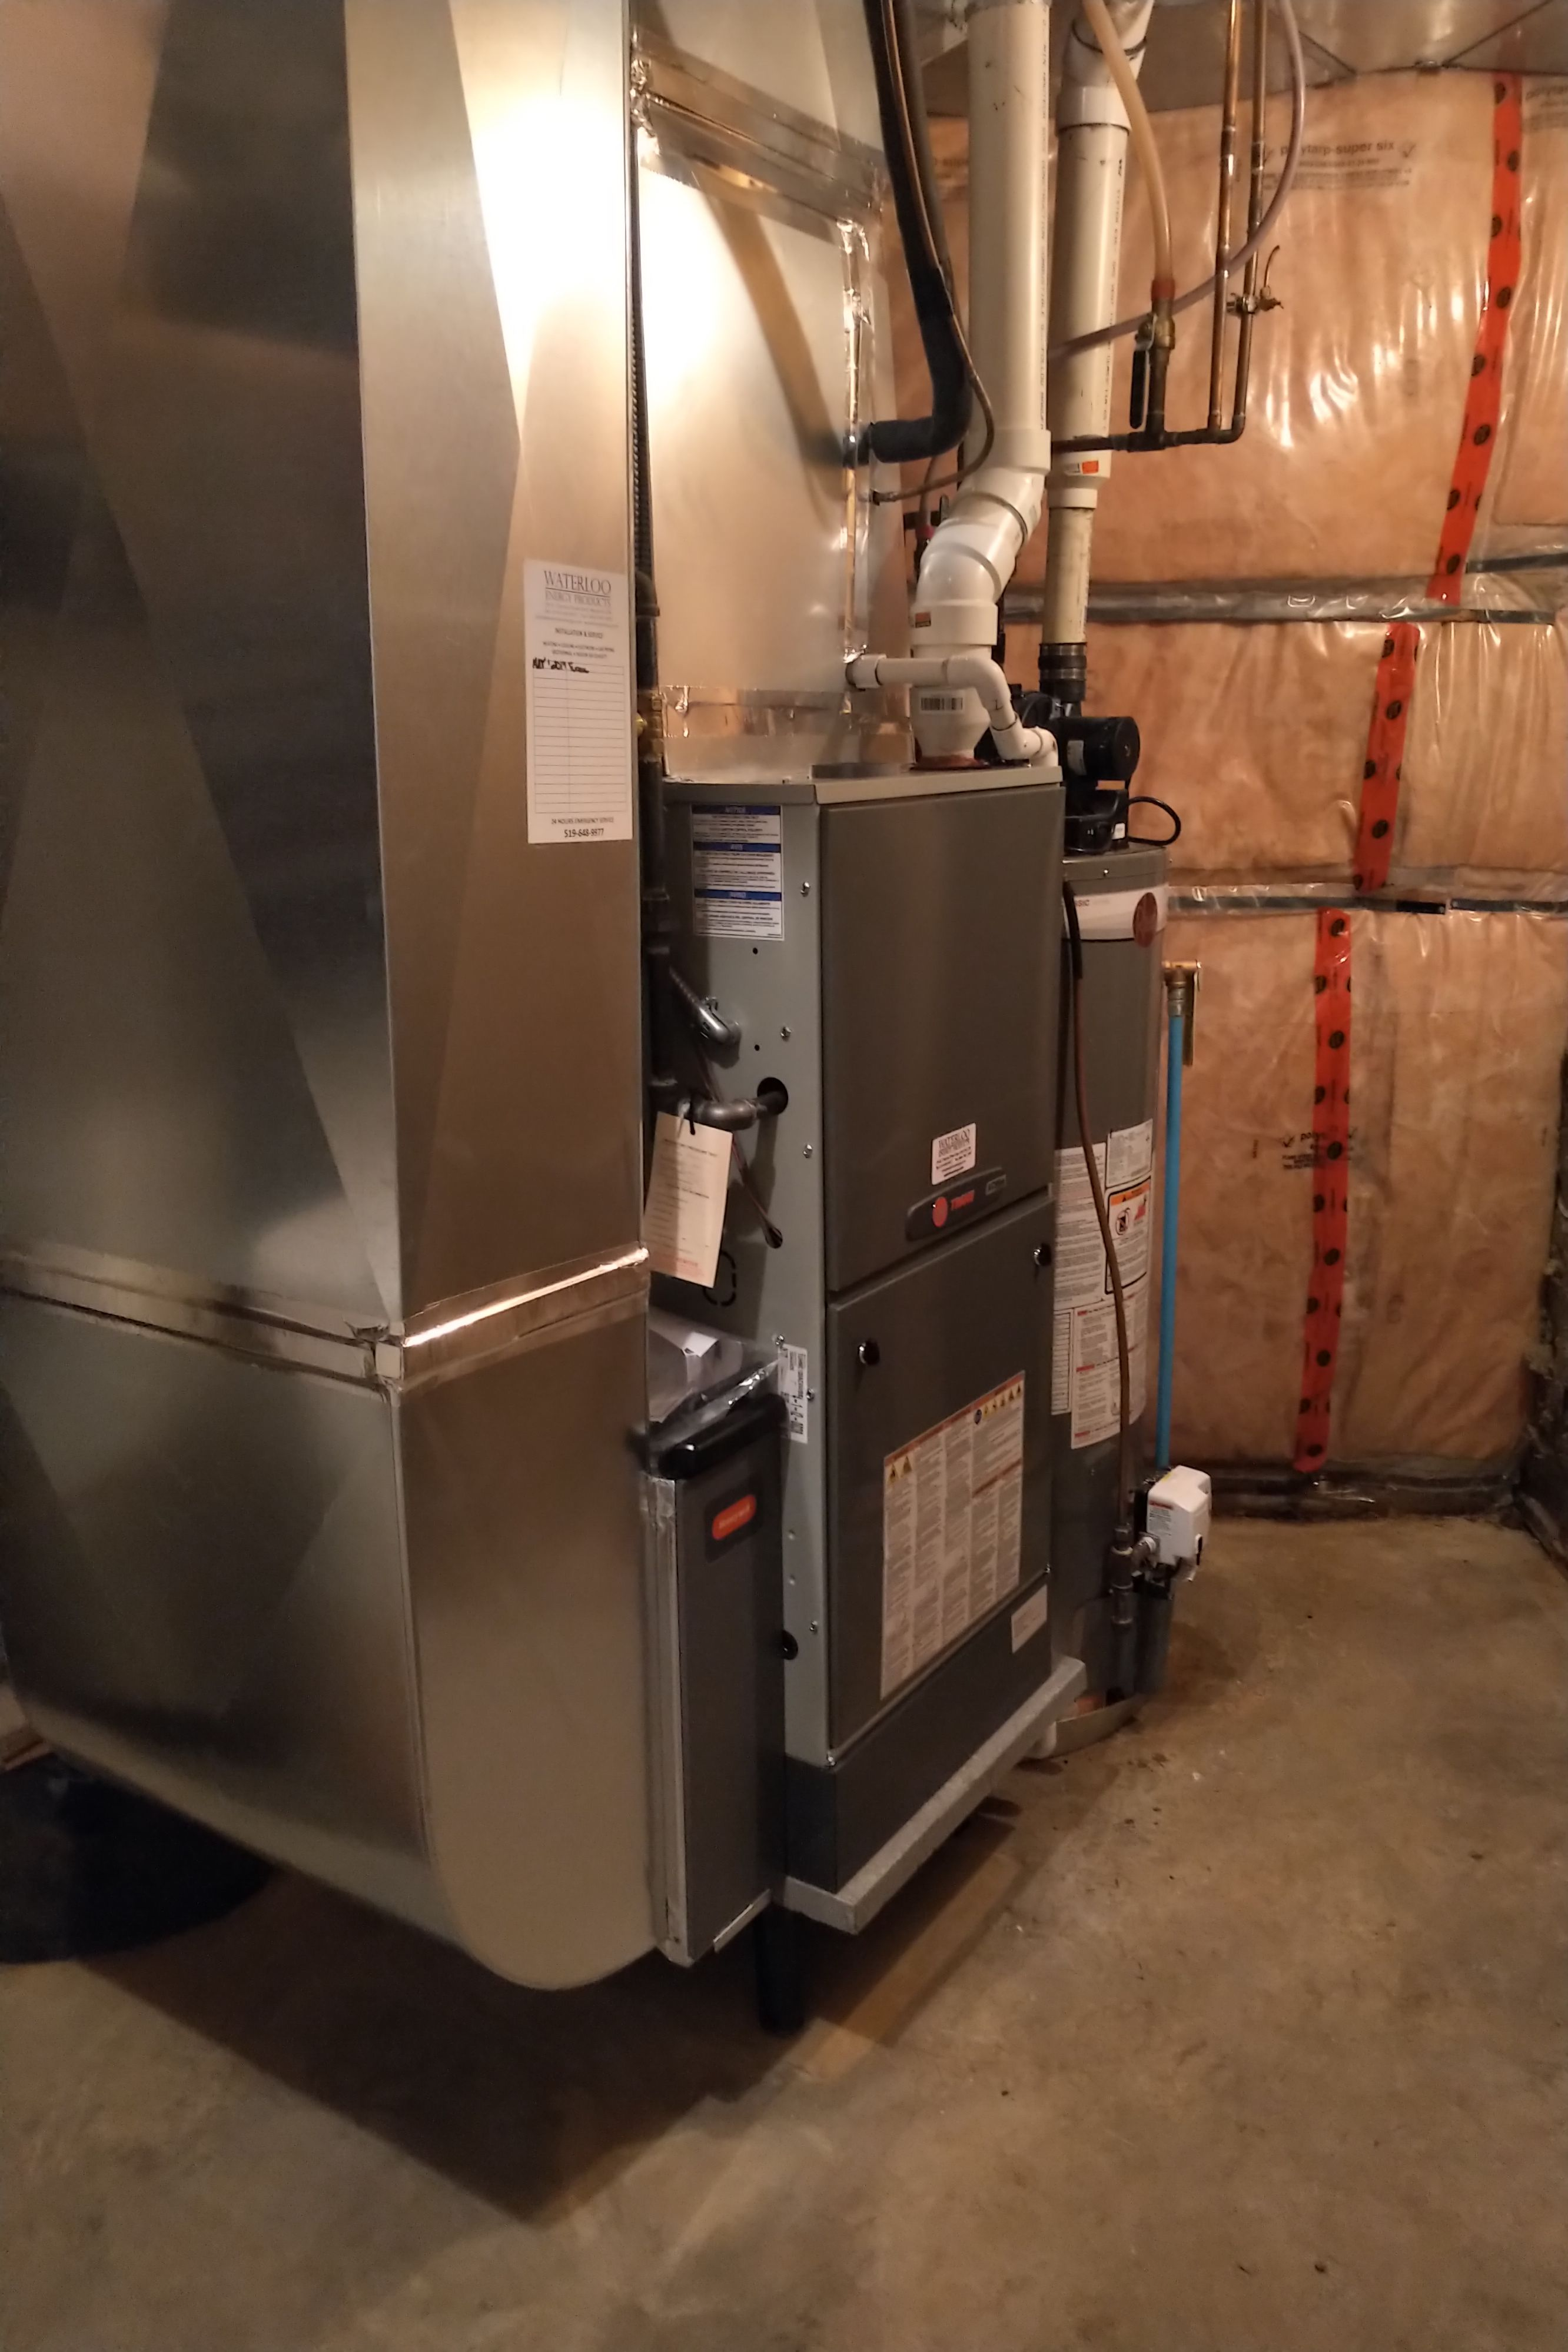 Check Out Lastest Install This Customer S Existing Furnace Has Had Water Damage And Was Not Functional Our Customer Requested That We Raise The New Furnace A